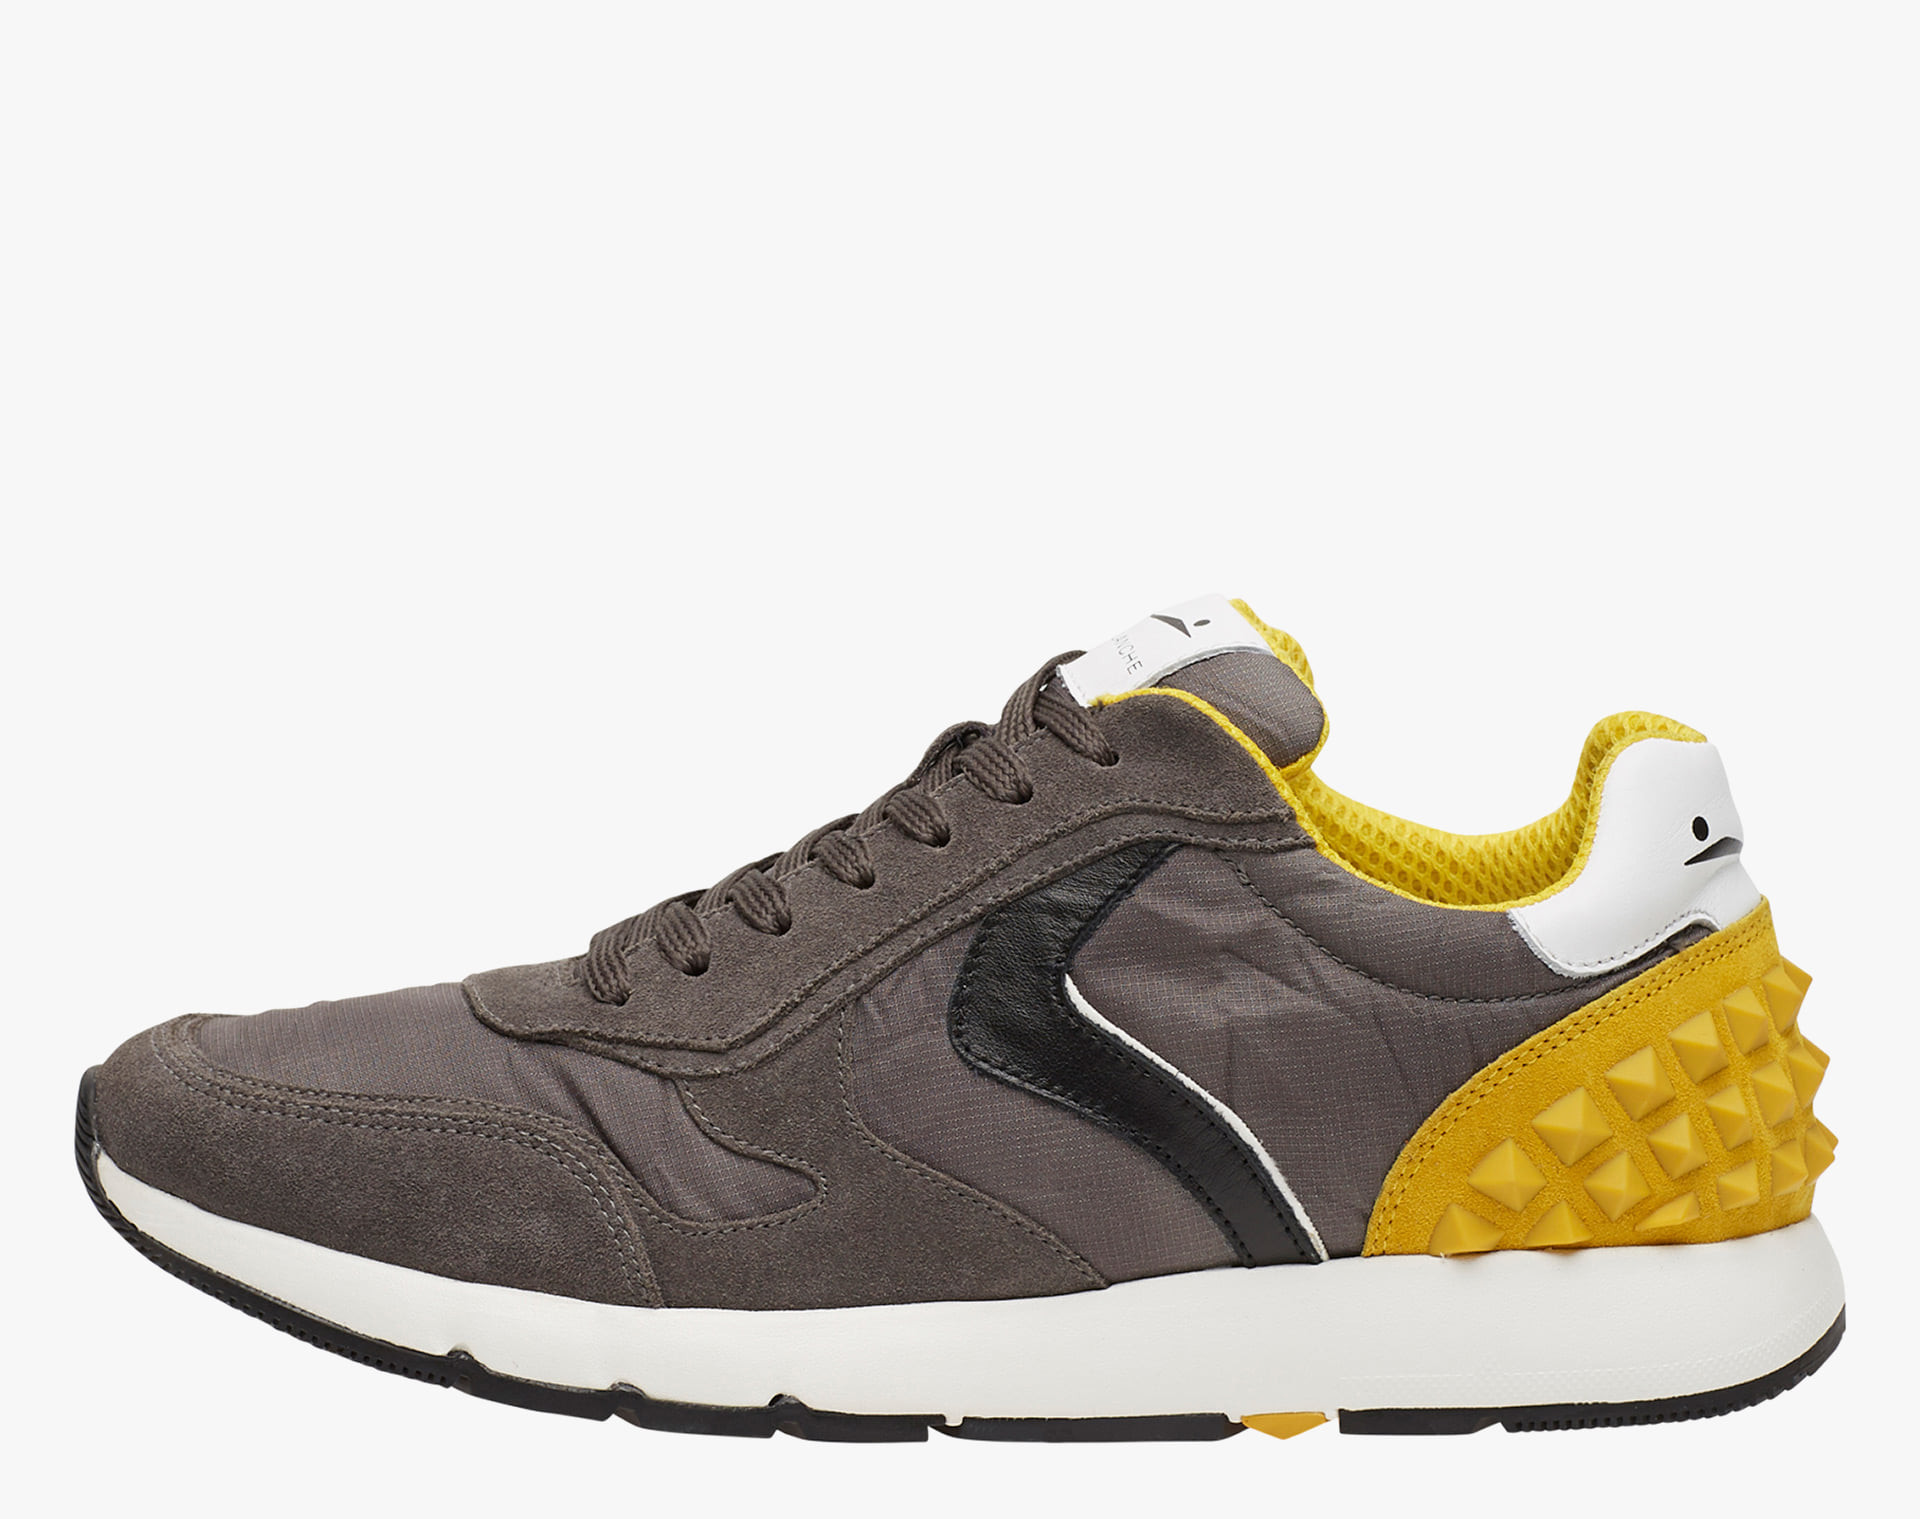 REUBENT STUDS - Sneakers in leather and nylon - Charcoal Grey-Black-Yellow